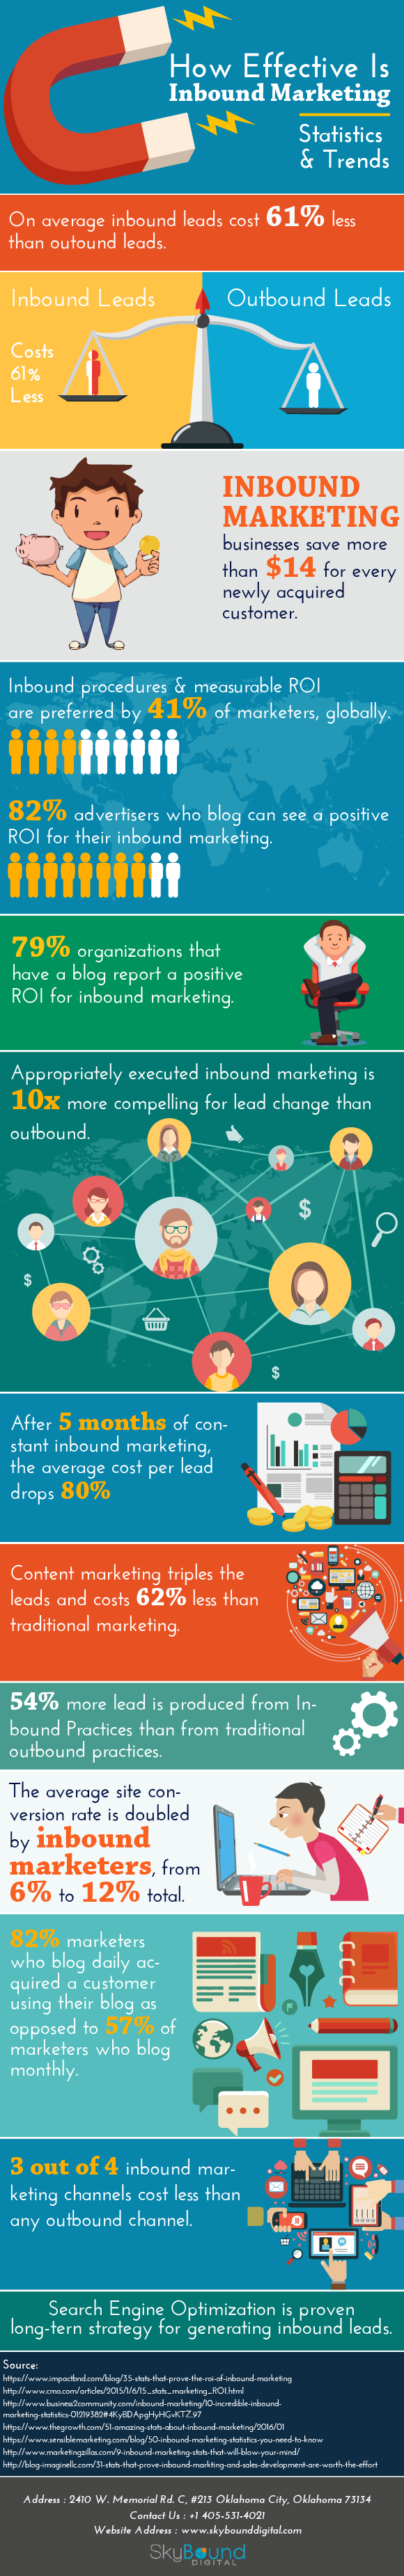 Find Out How Effective Is Inbound Marketing